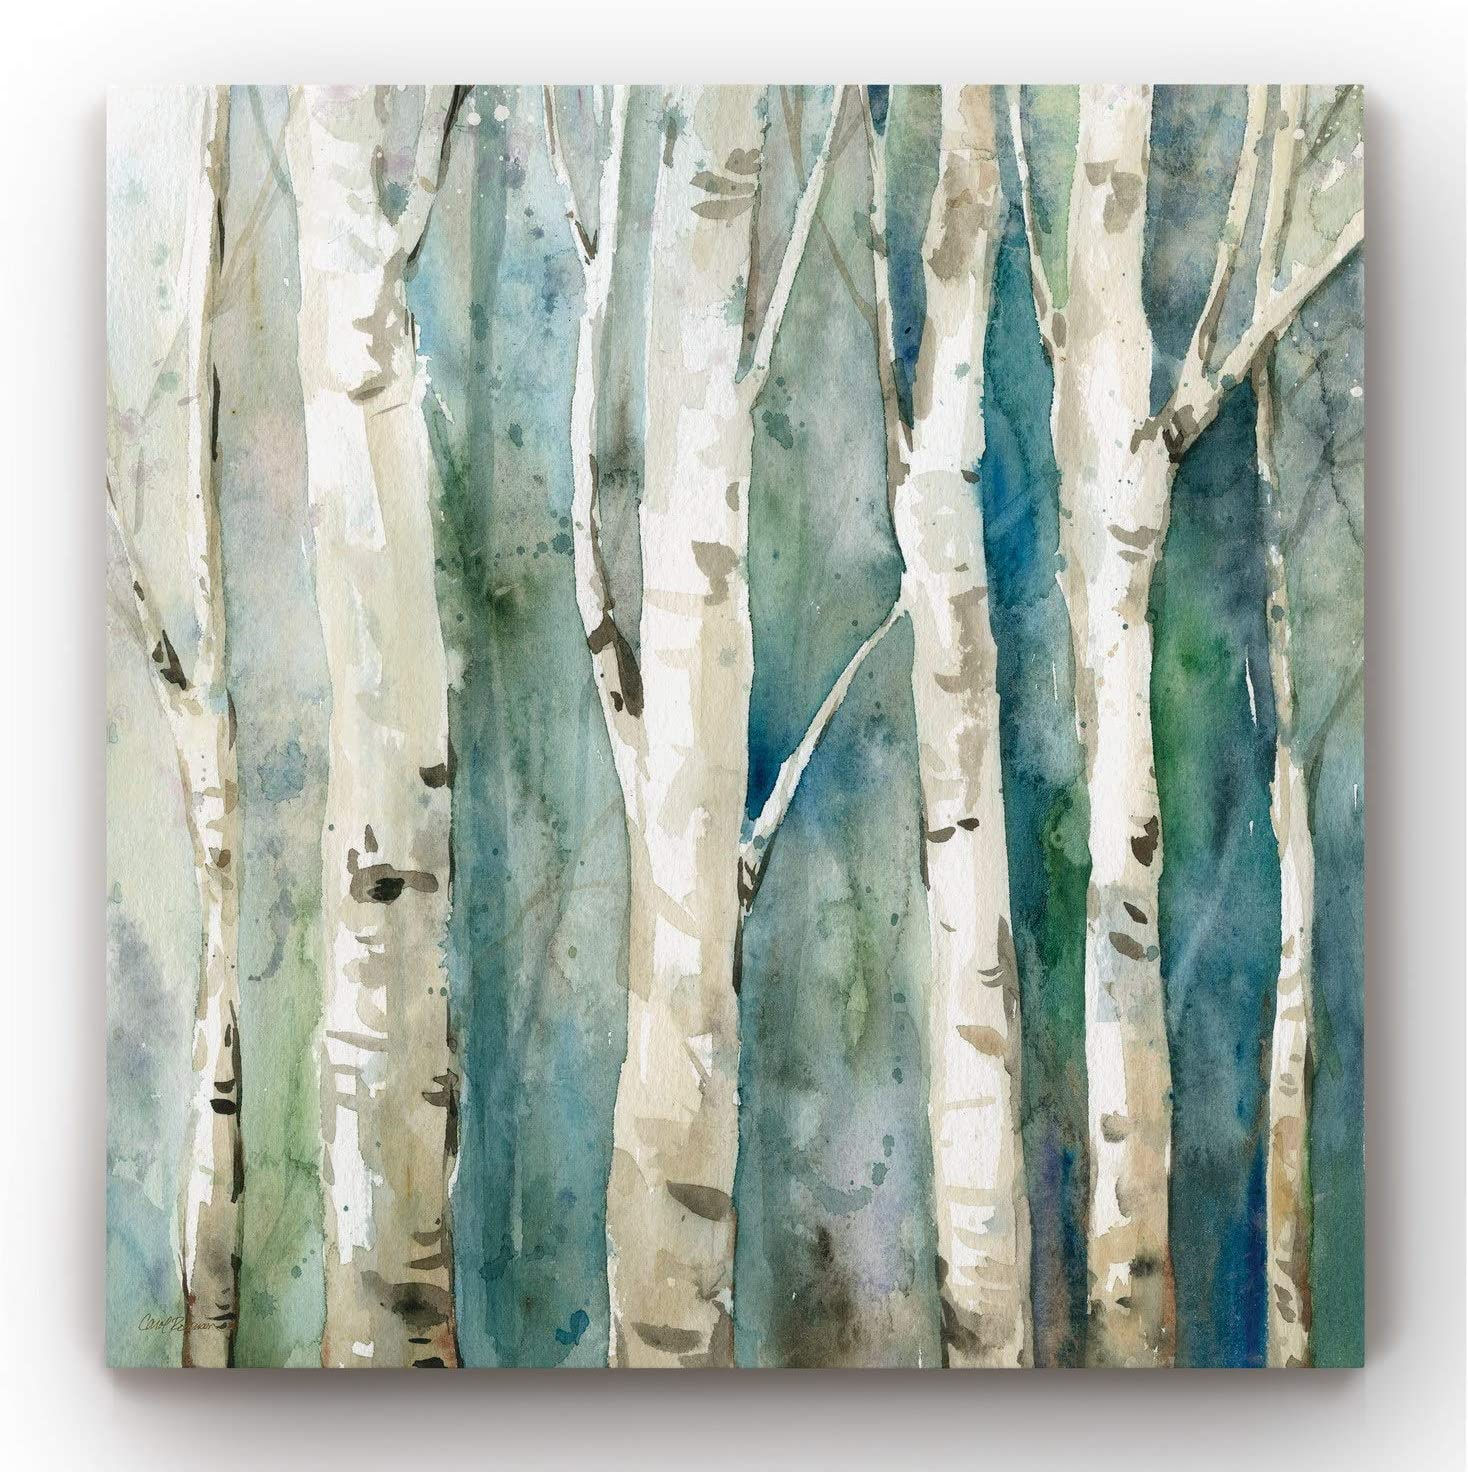 Canvas Wall Art, Wall Décor Canvas, Modern, Contemporary, Rustic, Romantic, & Industrial, Ready to Hang - River Birch II 32X32